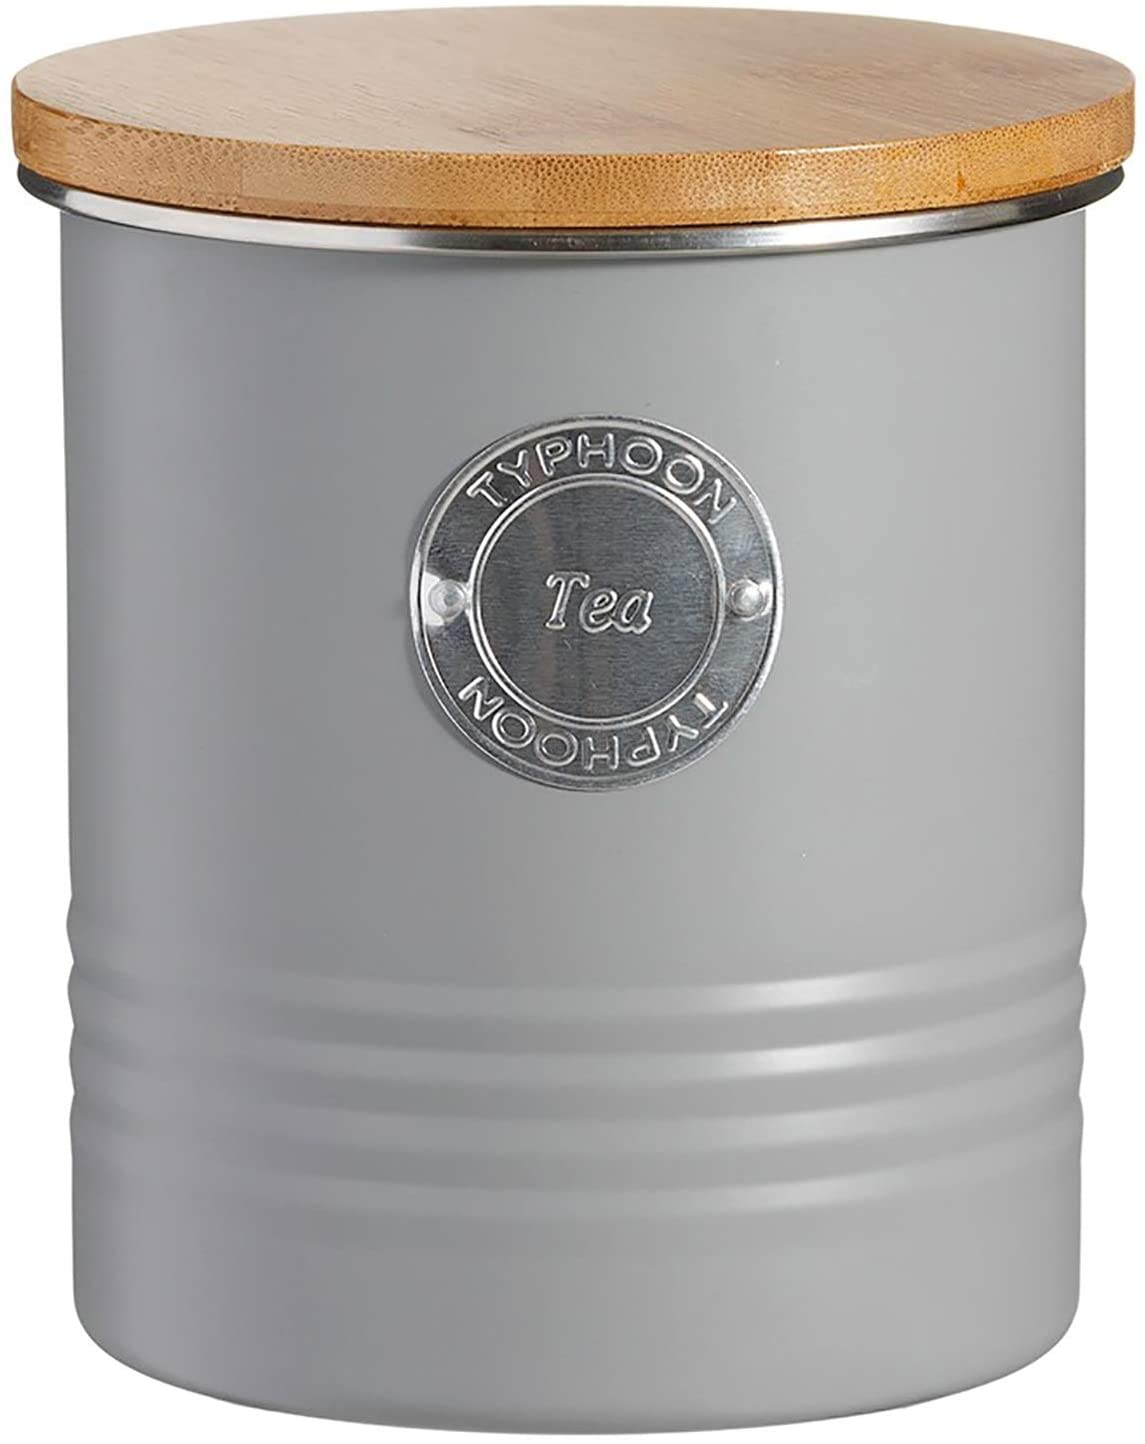 Typhoon Living Tea Storage Canister, Grey, 1400.731V